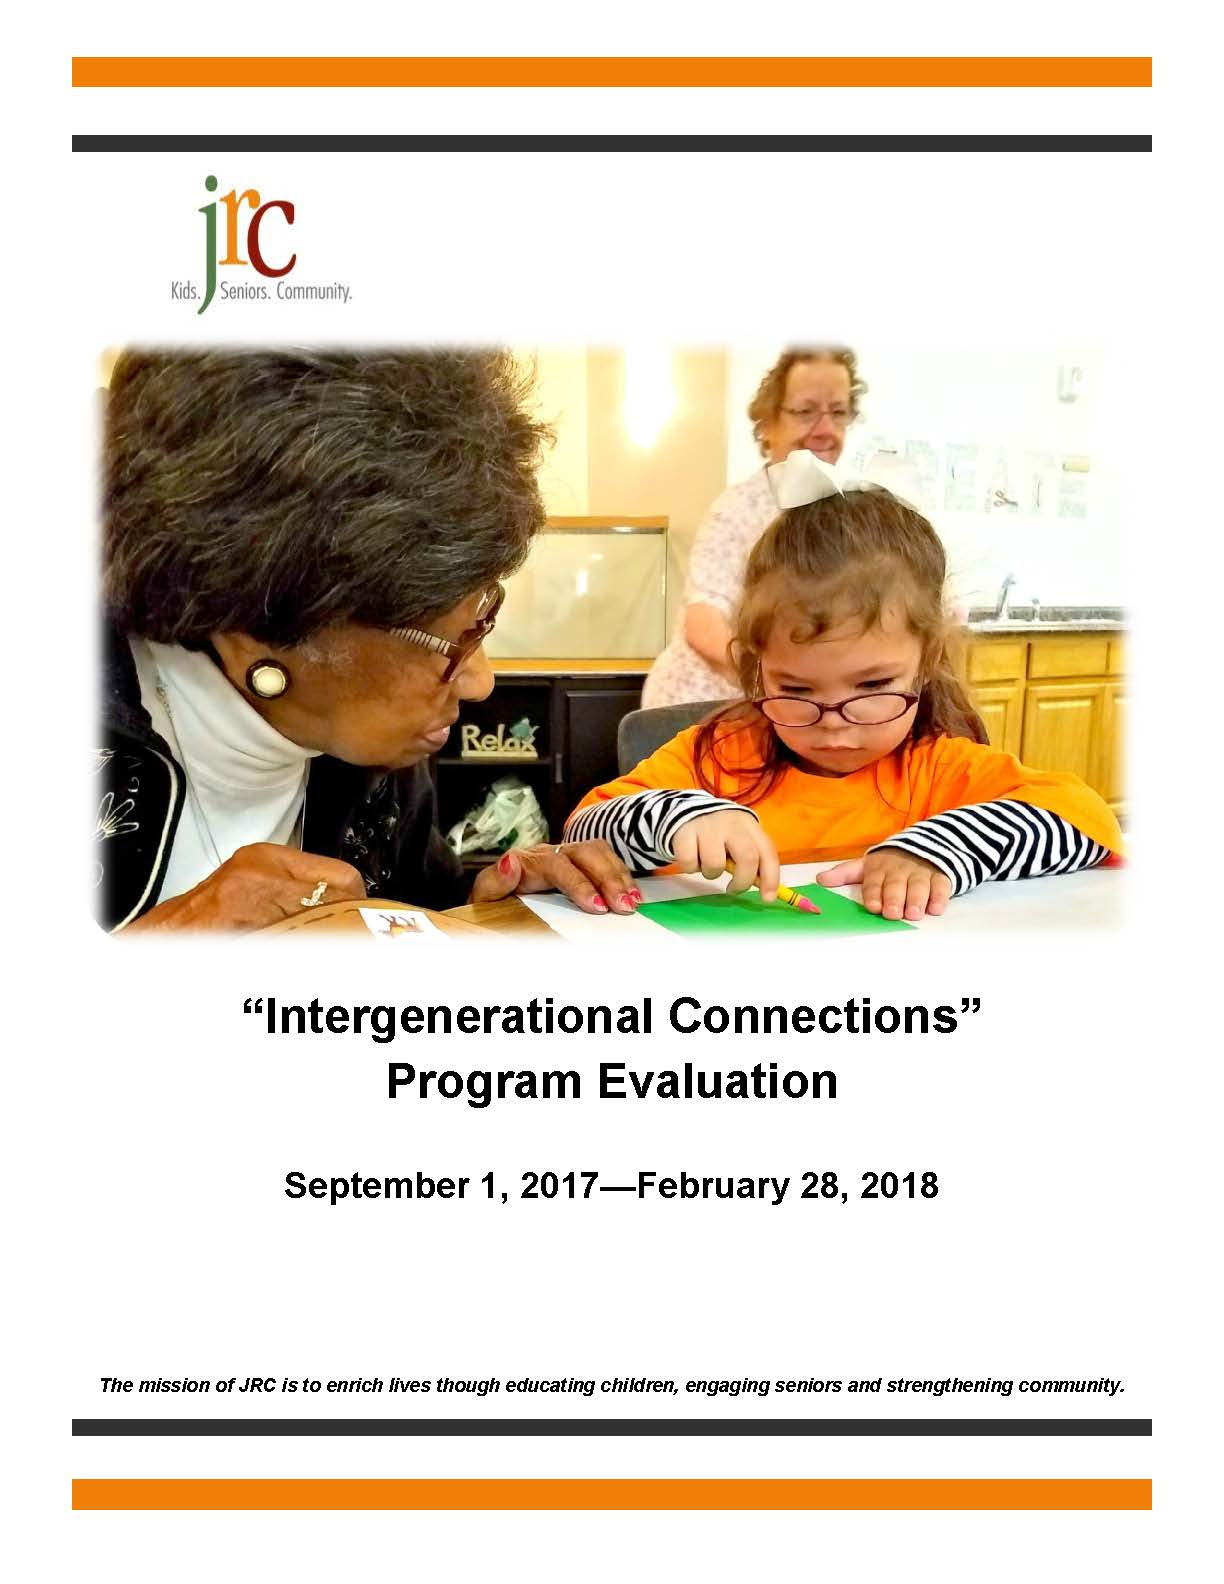 Intergenerational Connections Evaluation Report